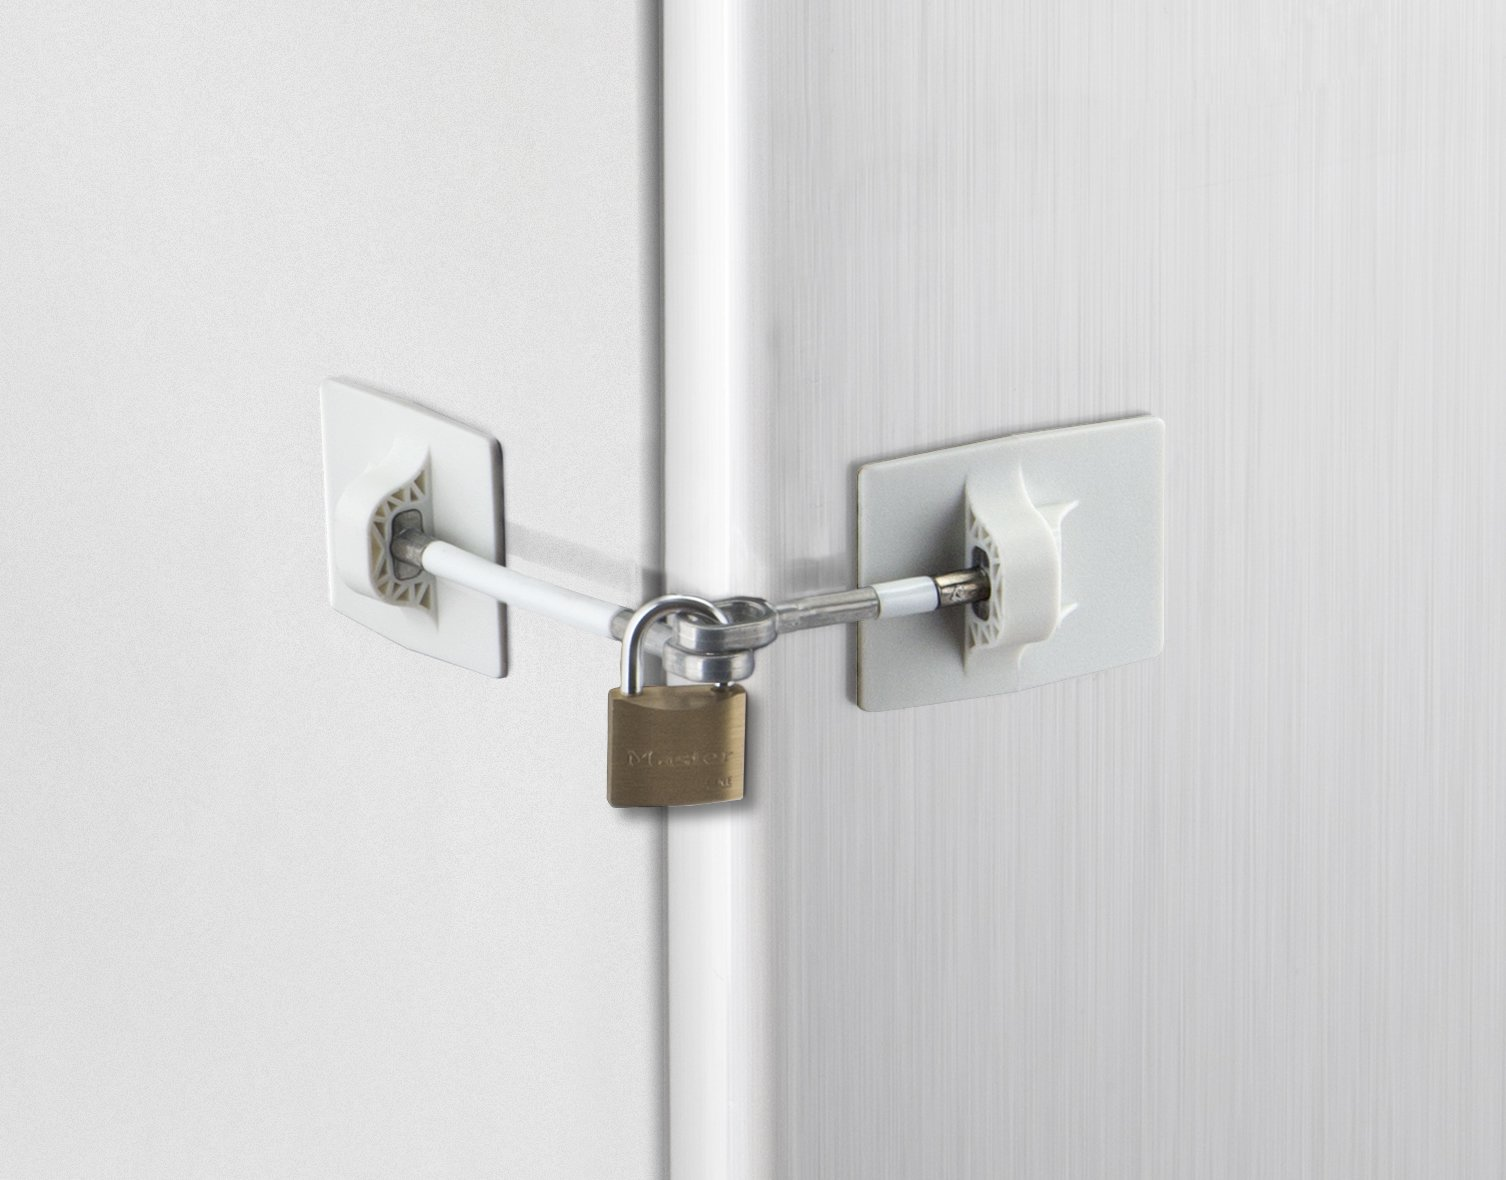 Refrigerator Door Lock with Padlock - White by Computer Security Products